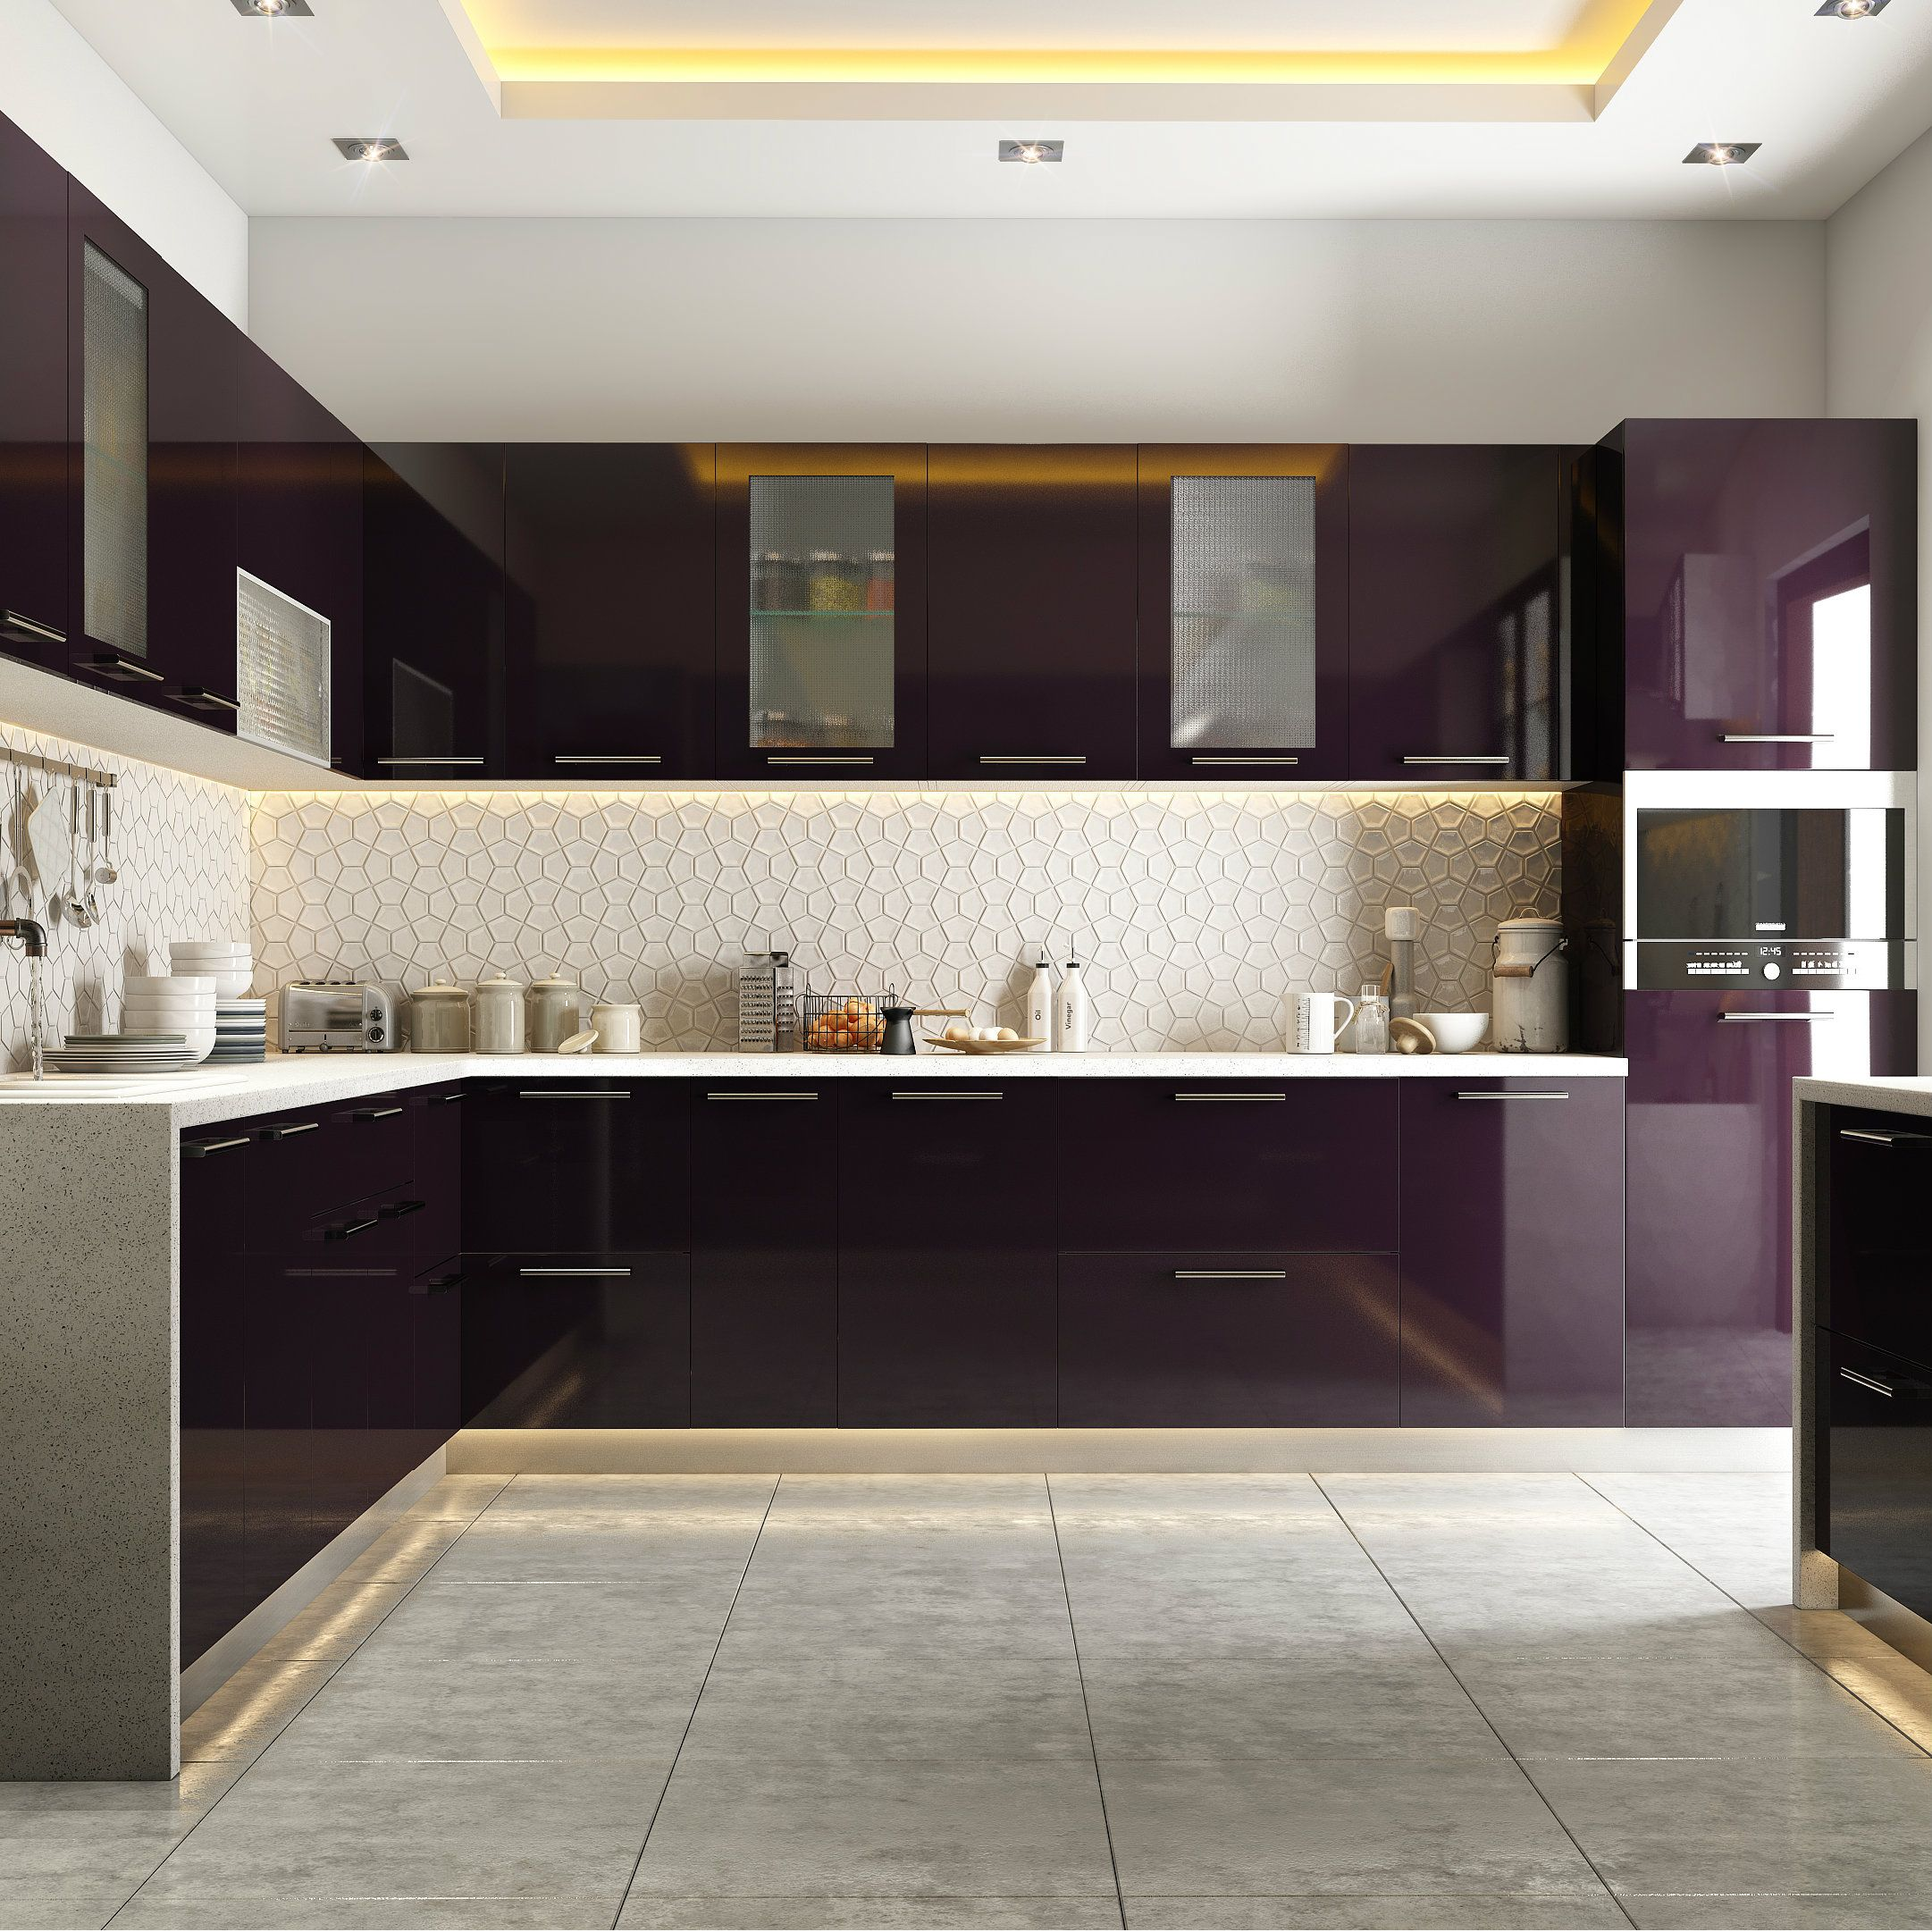 55+ Modular Kitchen Design Ideas For Indian Homes